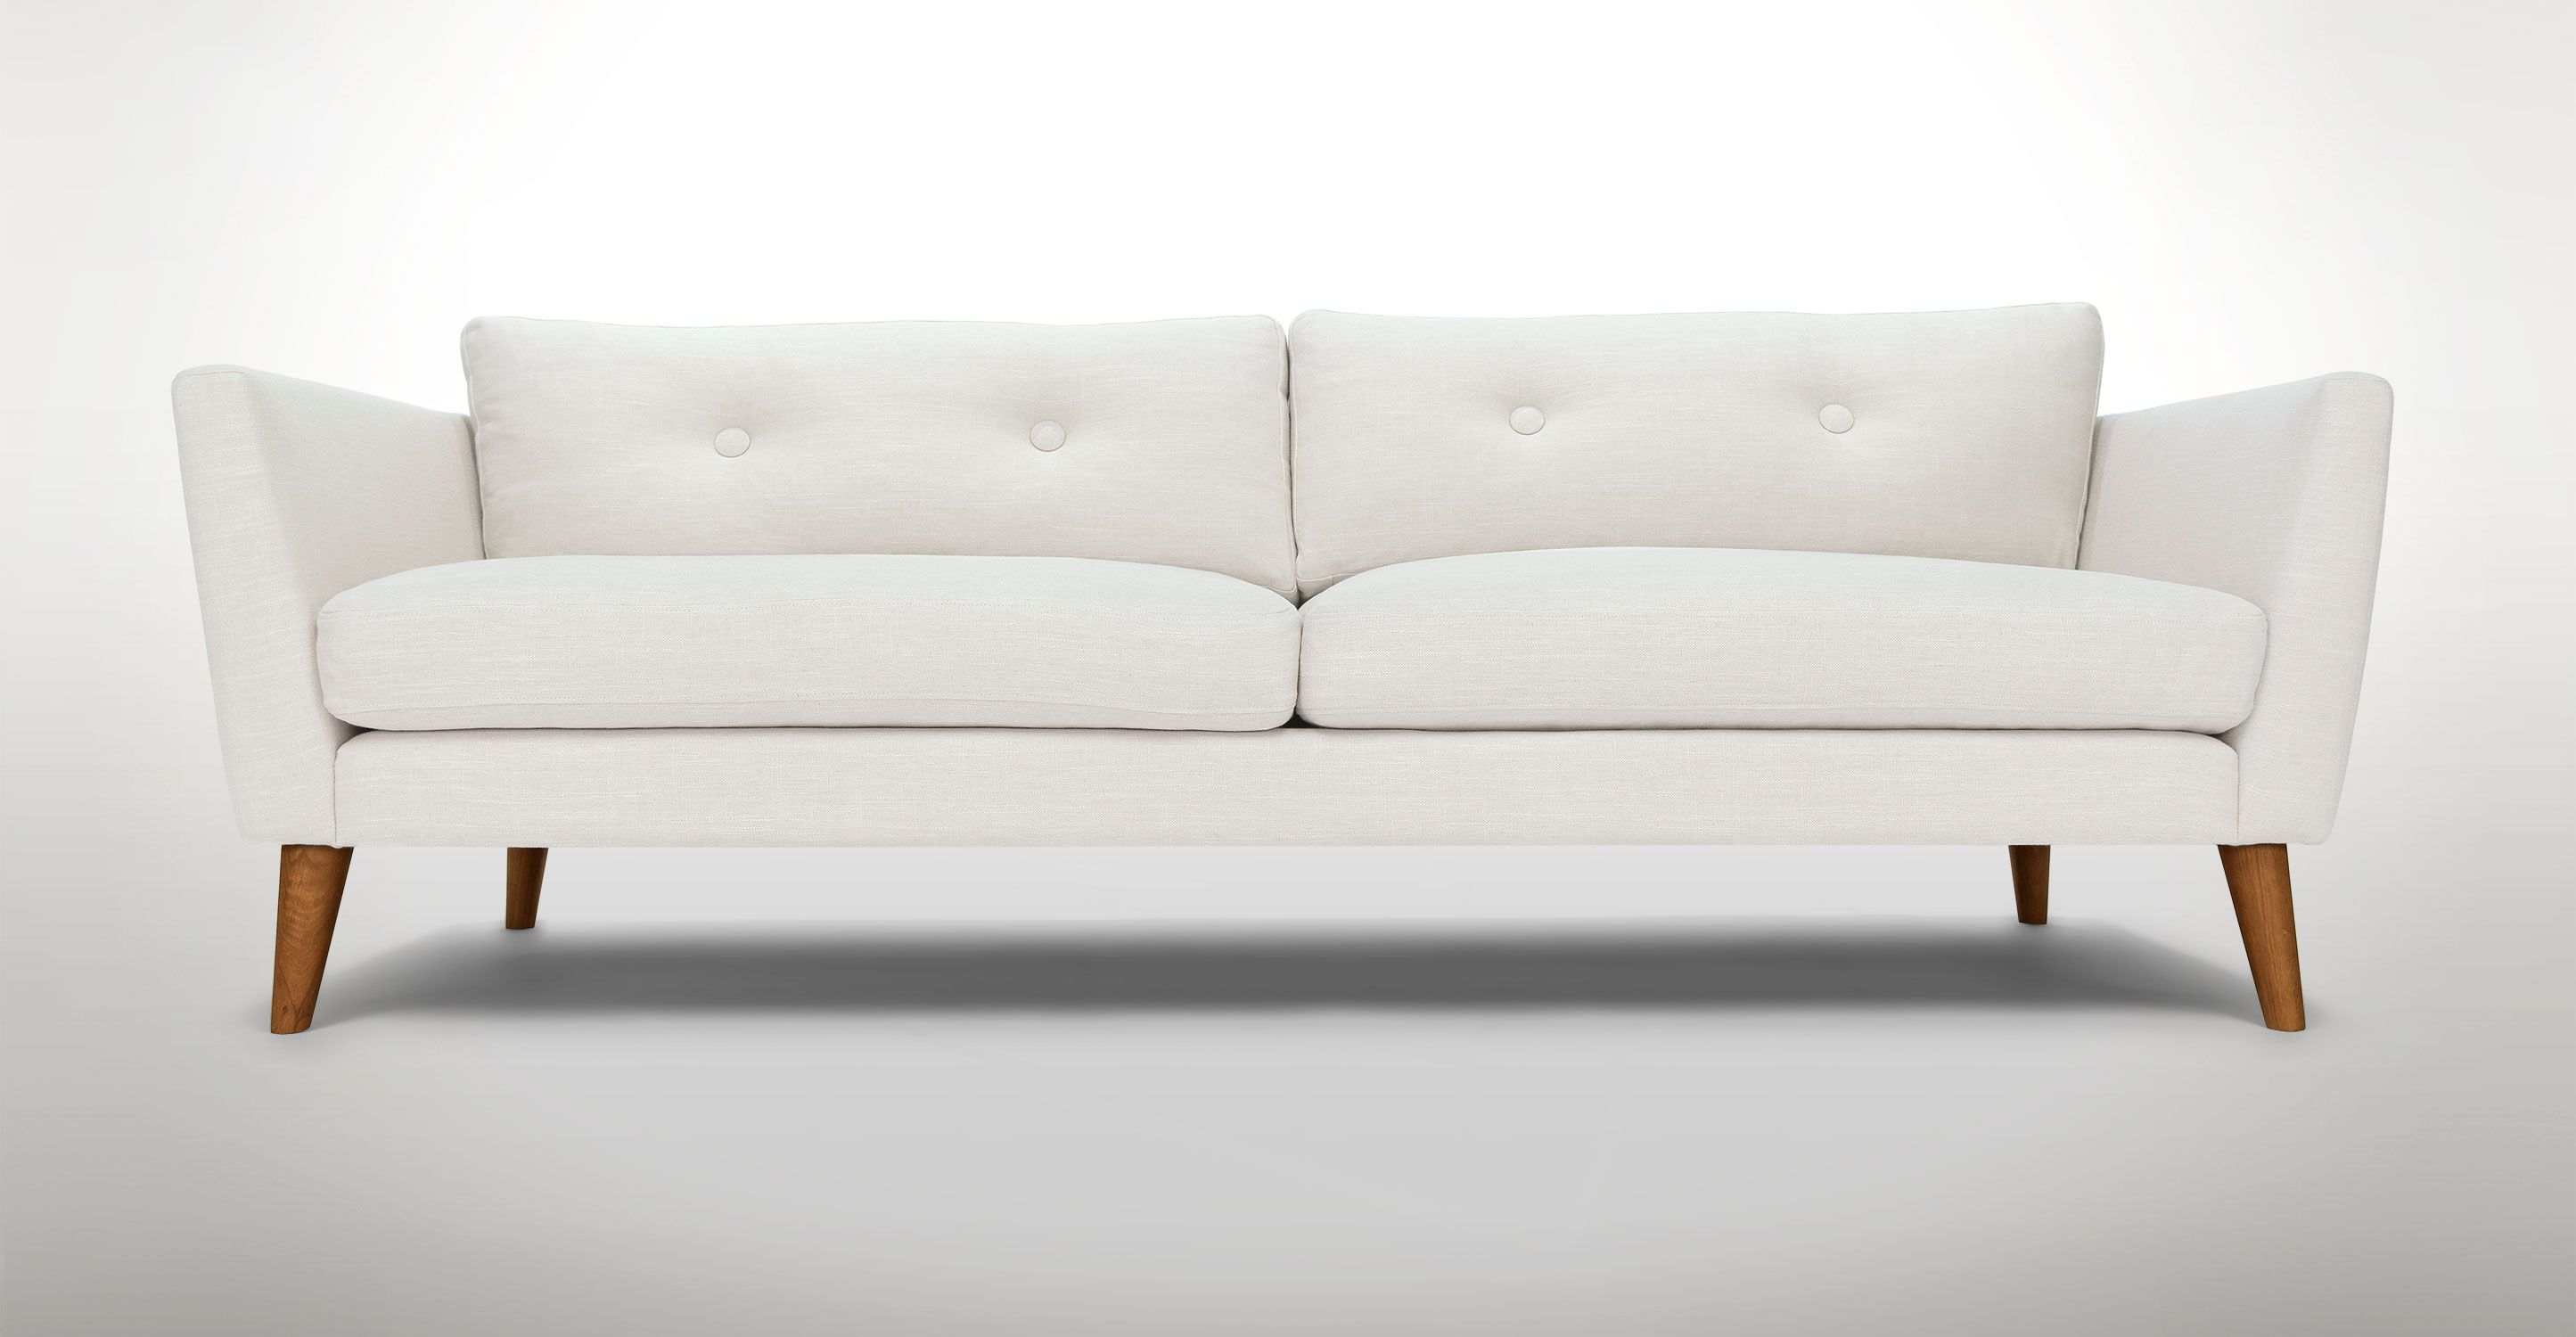 Canapé Relax Quartz White Tufted Sofa 3 Seater Solid Wood Legs Article Emil Modern